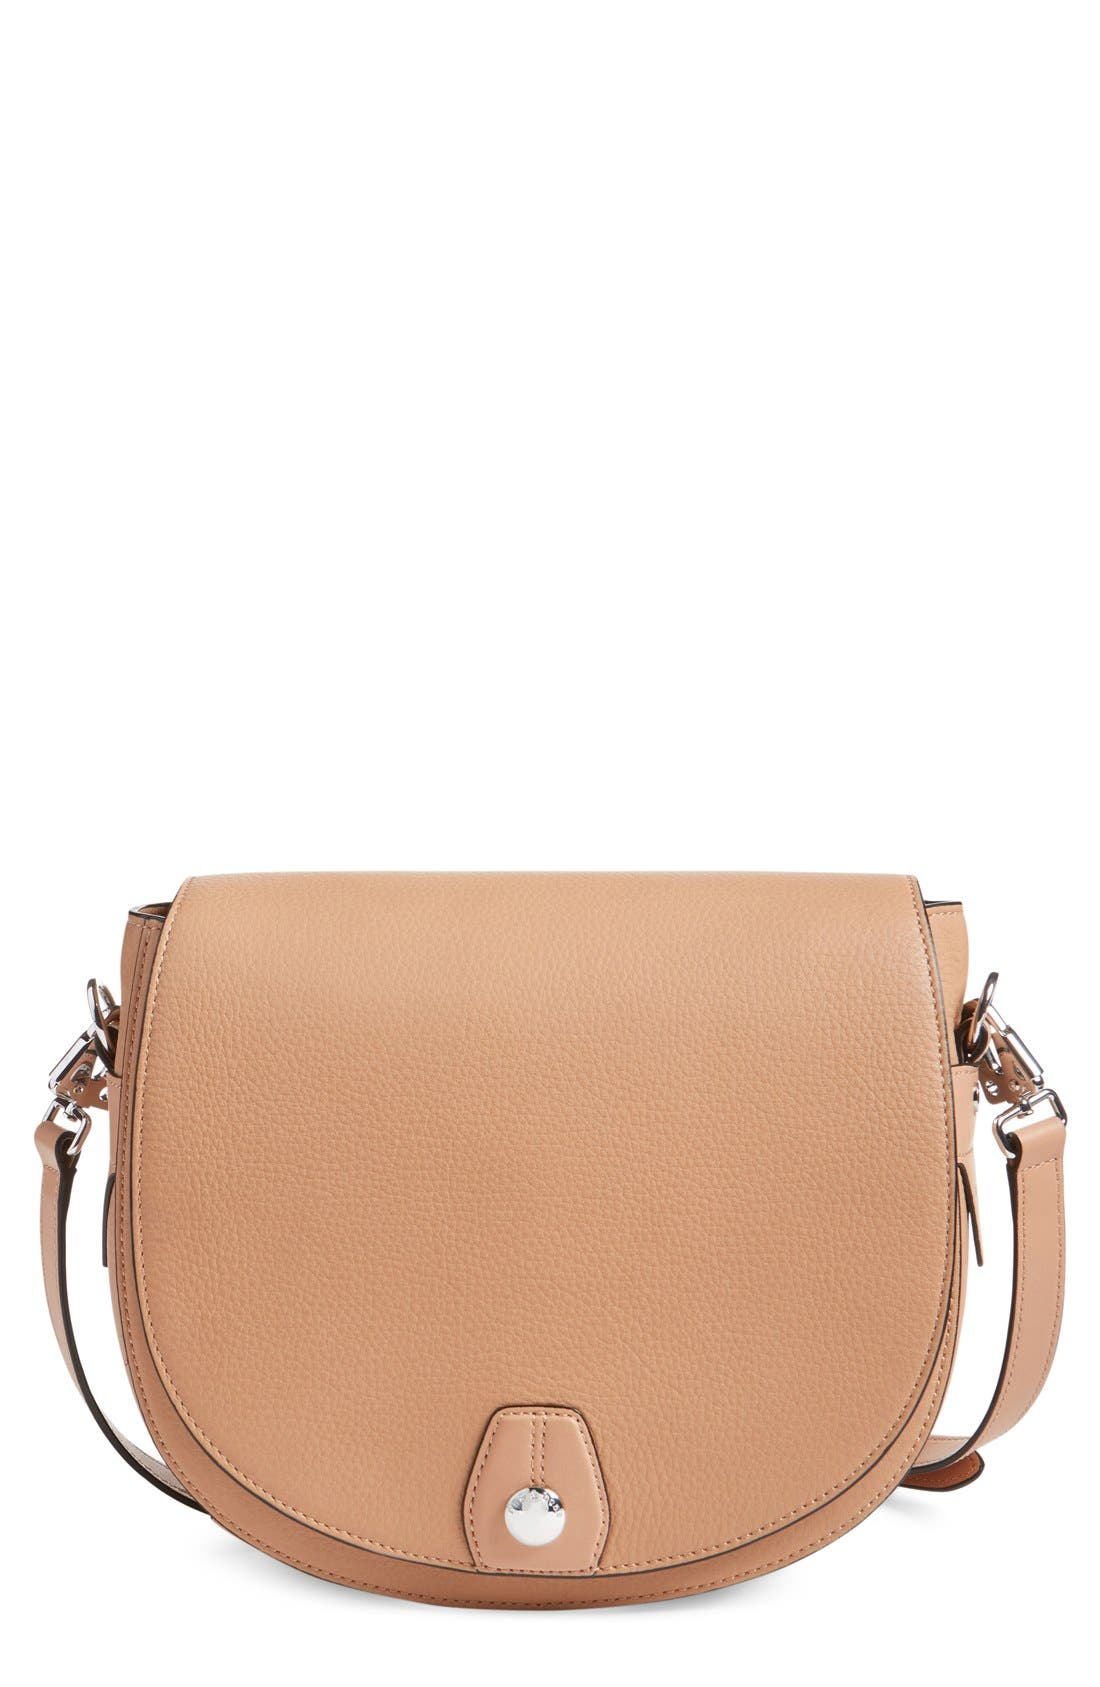 Main Image - rag & bone 'Flight' Leather Crossbody Saddle Bag